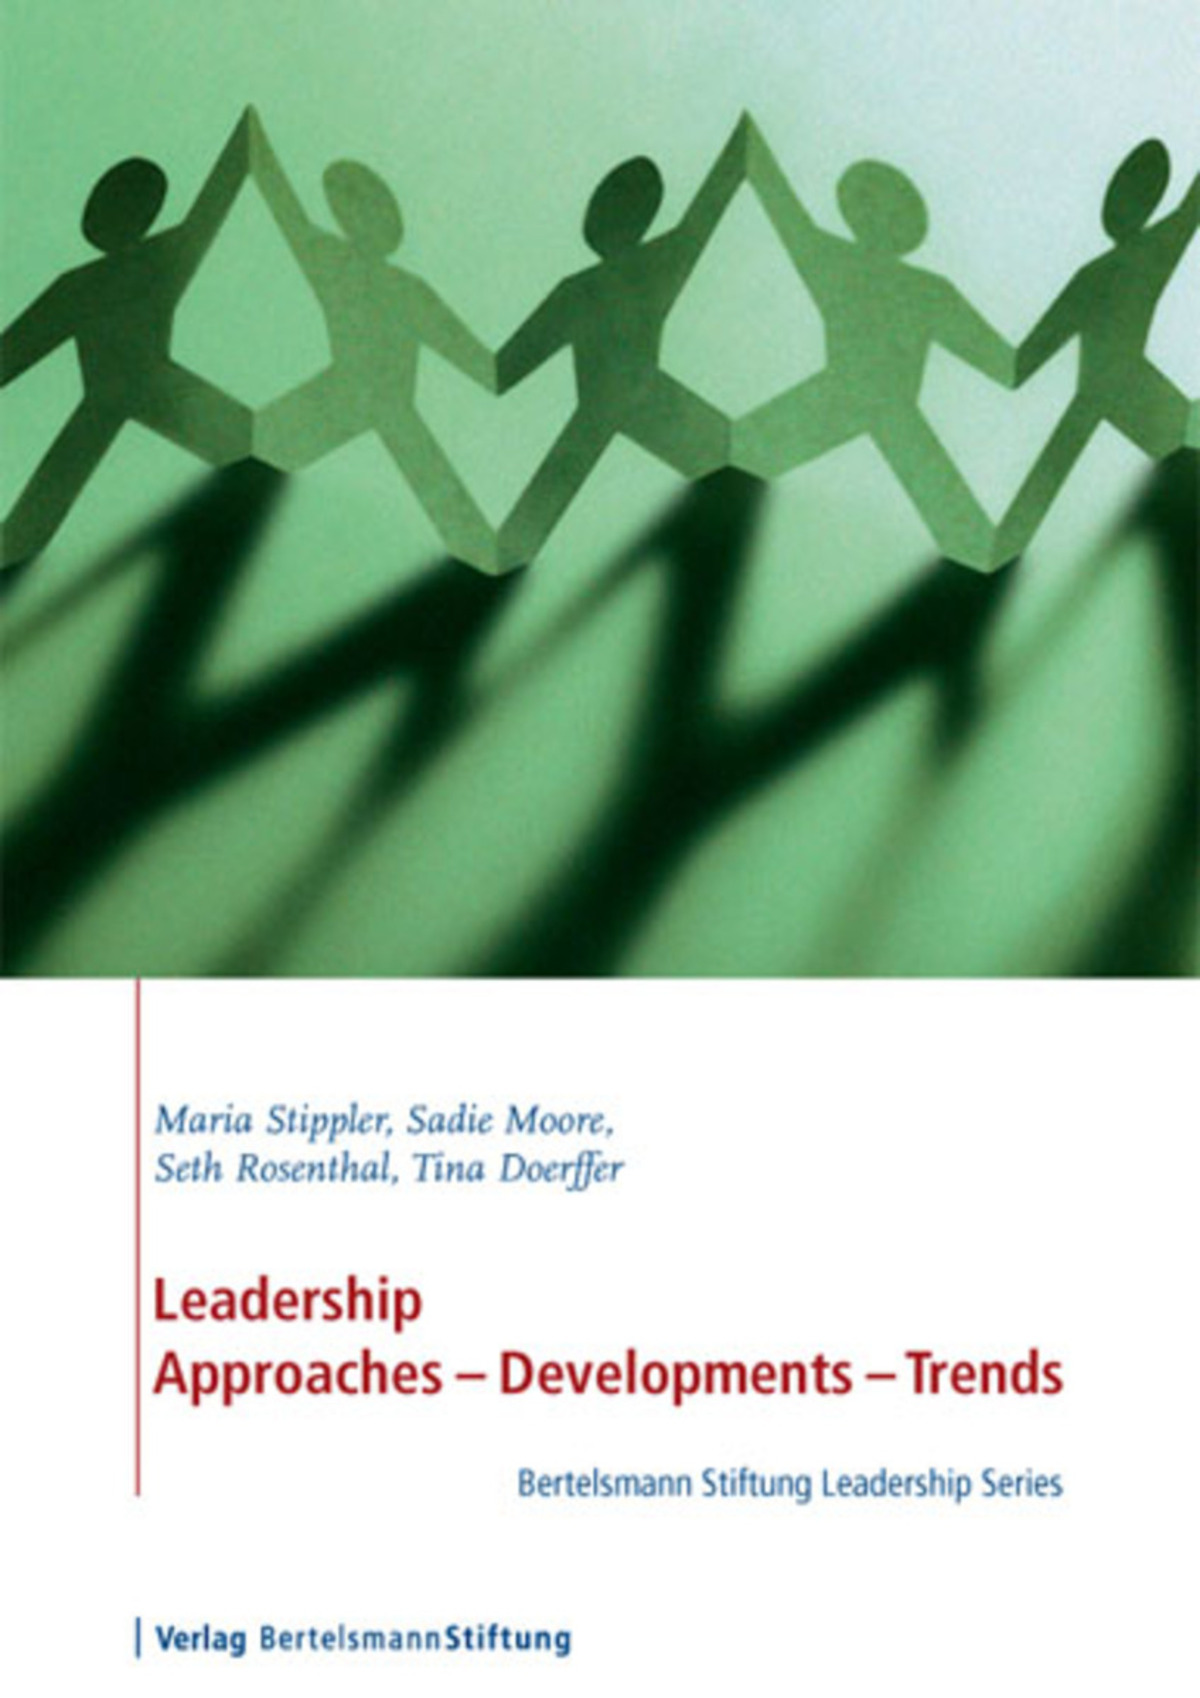 Leadership Approaches - Development - Trends